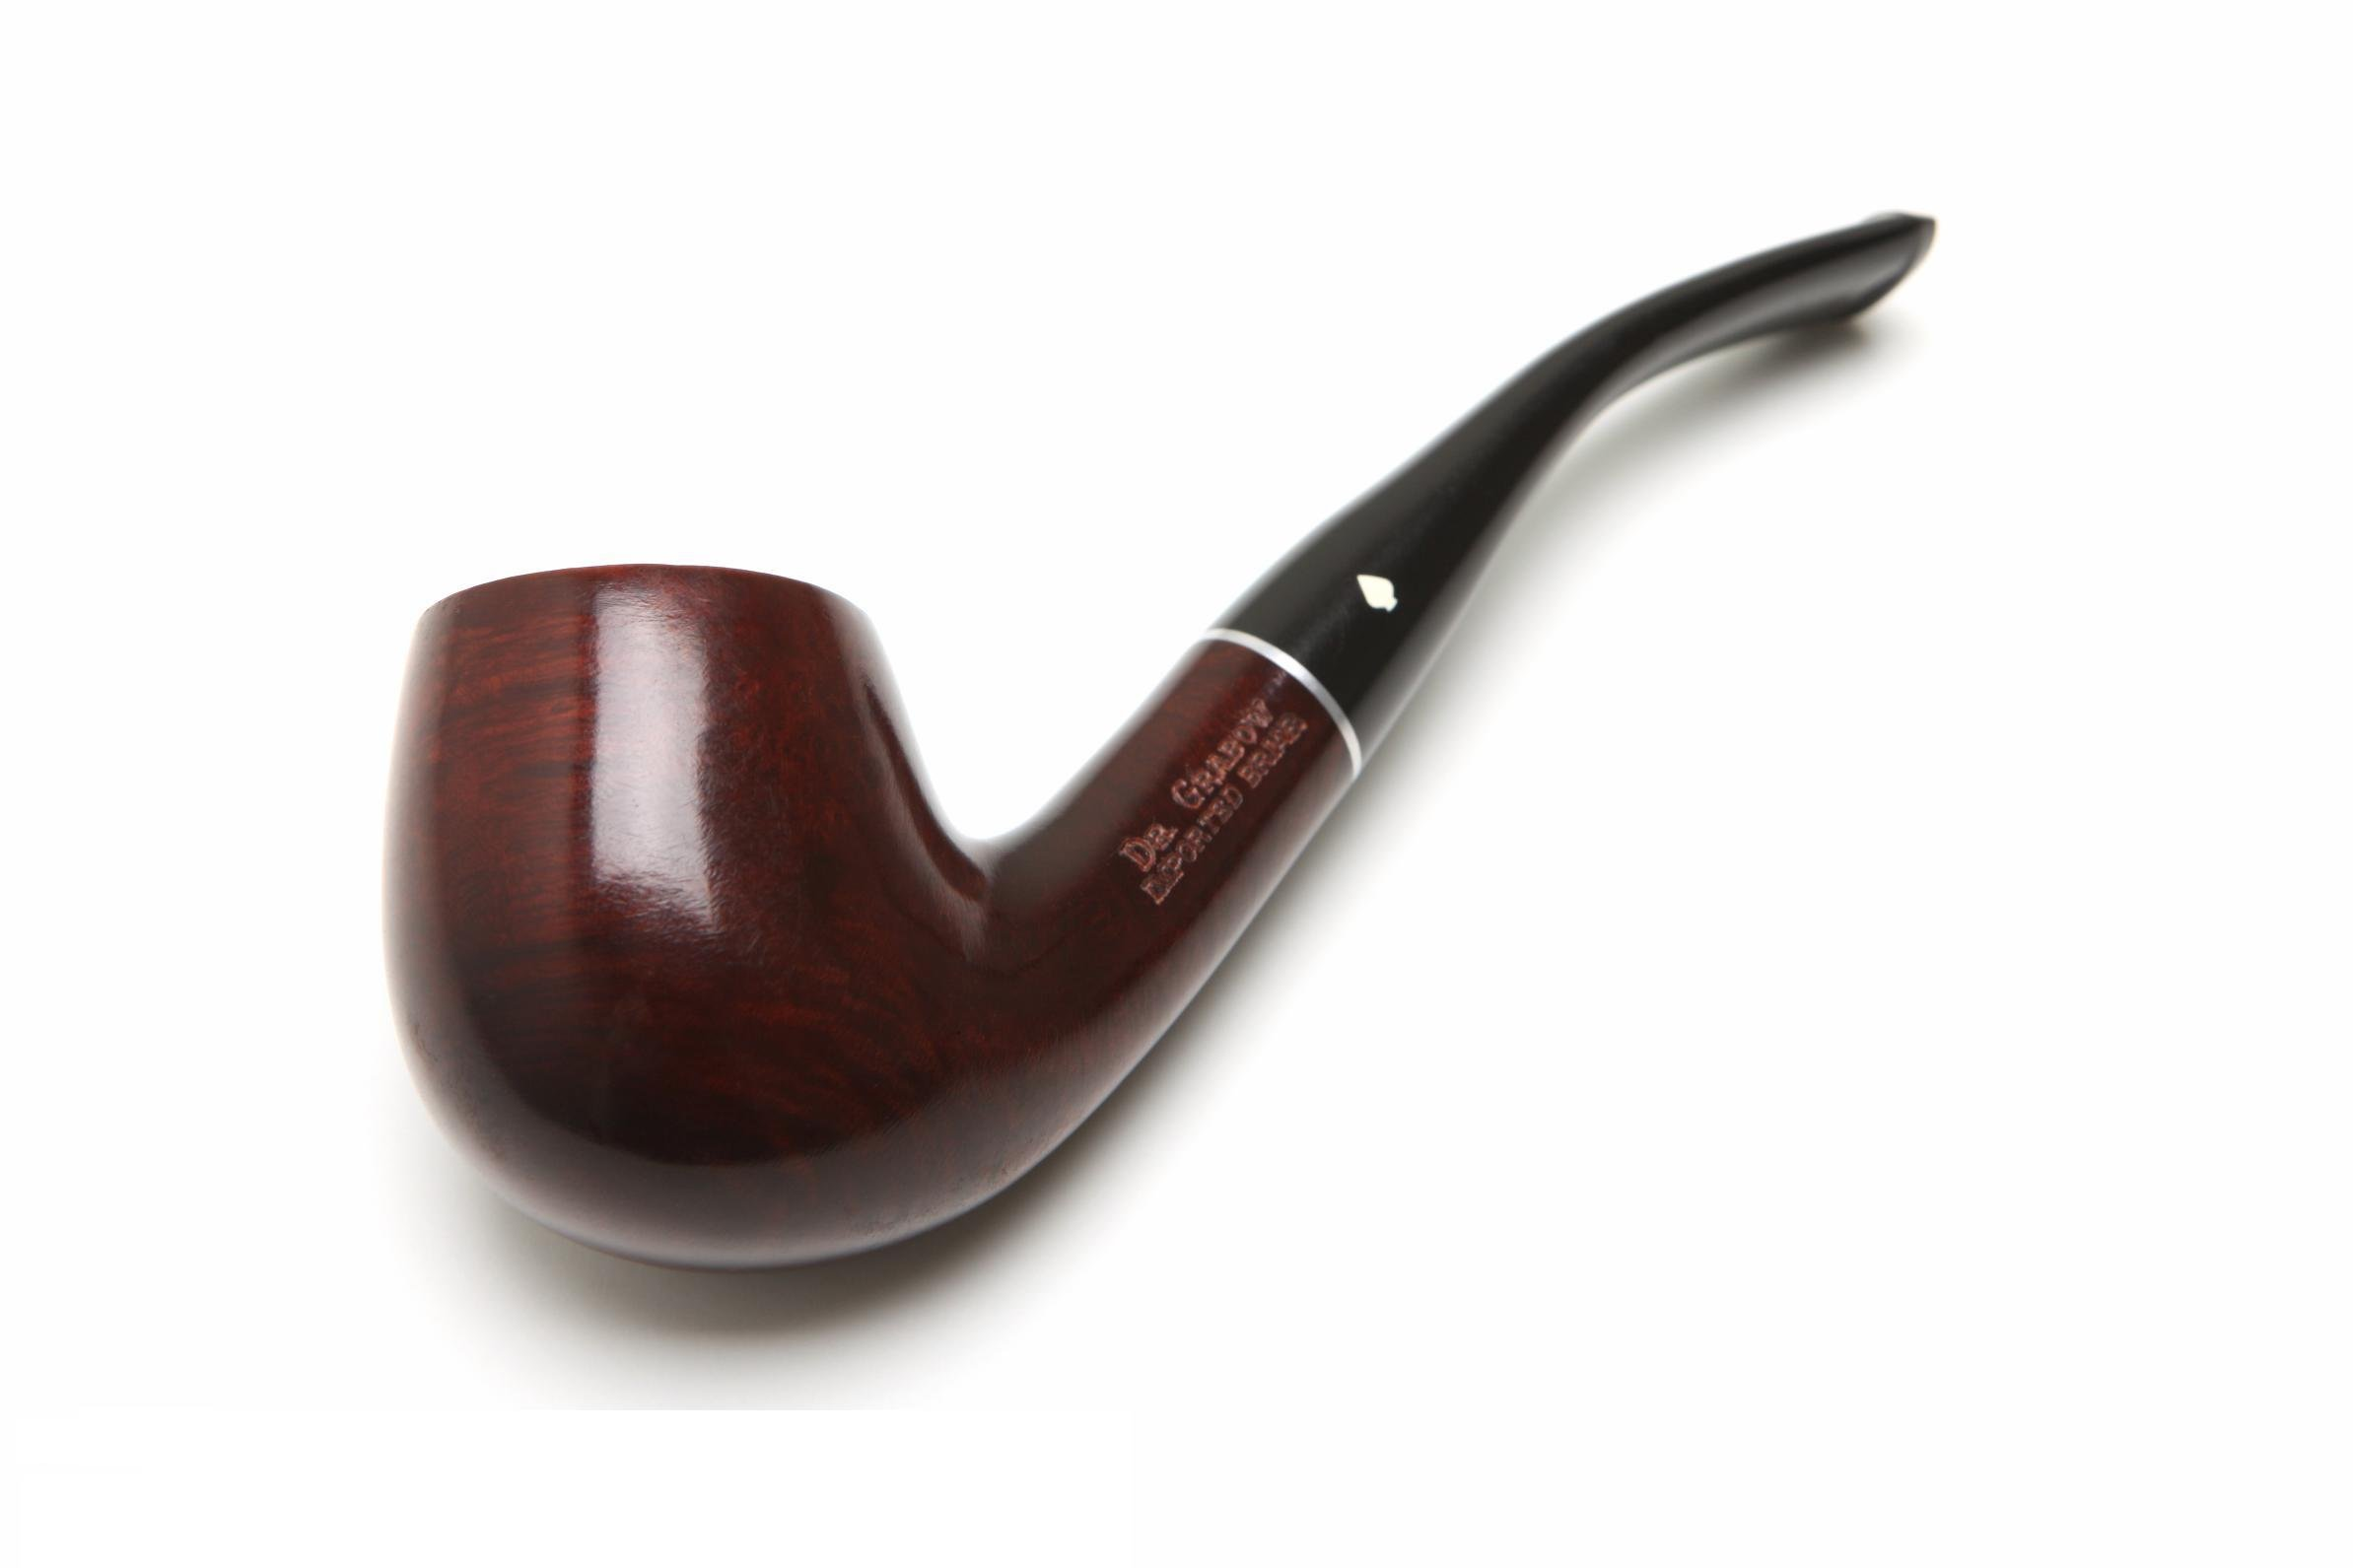 Dr Grabow Savoy Smooth Tobacco Pipe by Dr. Grabow